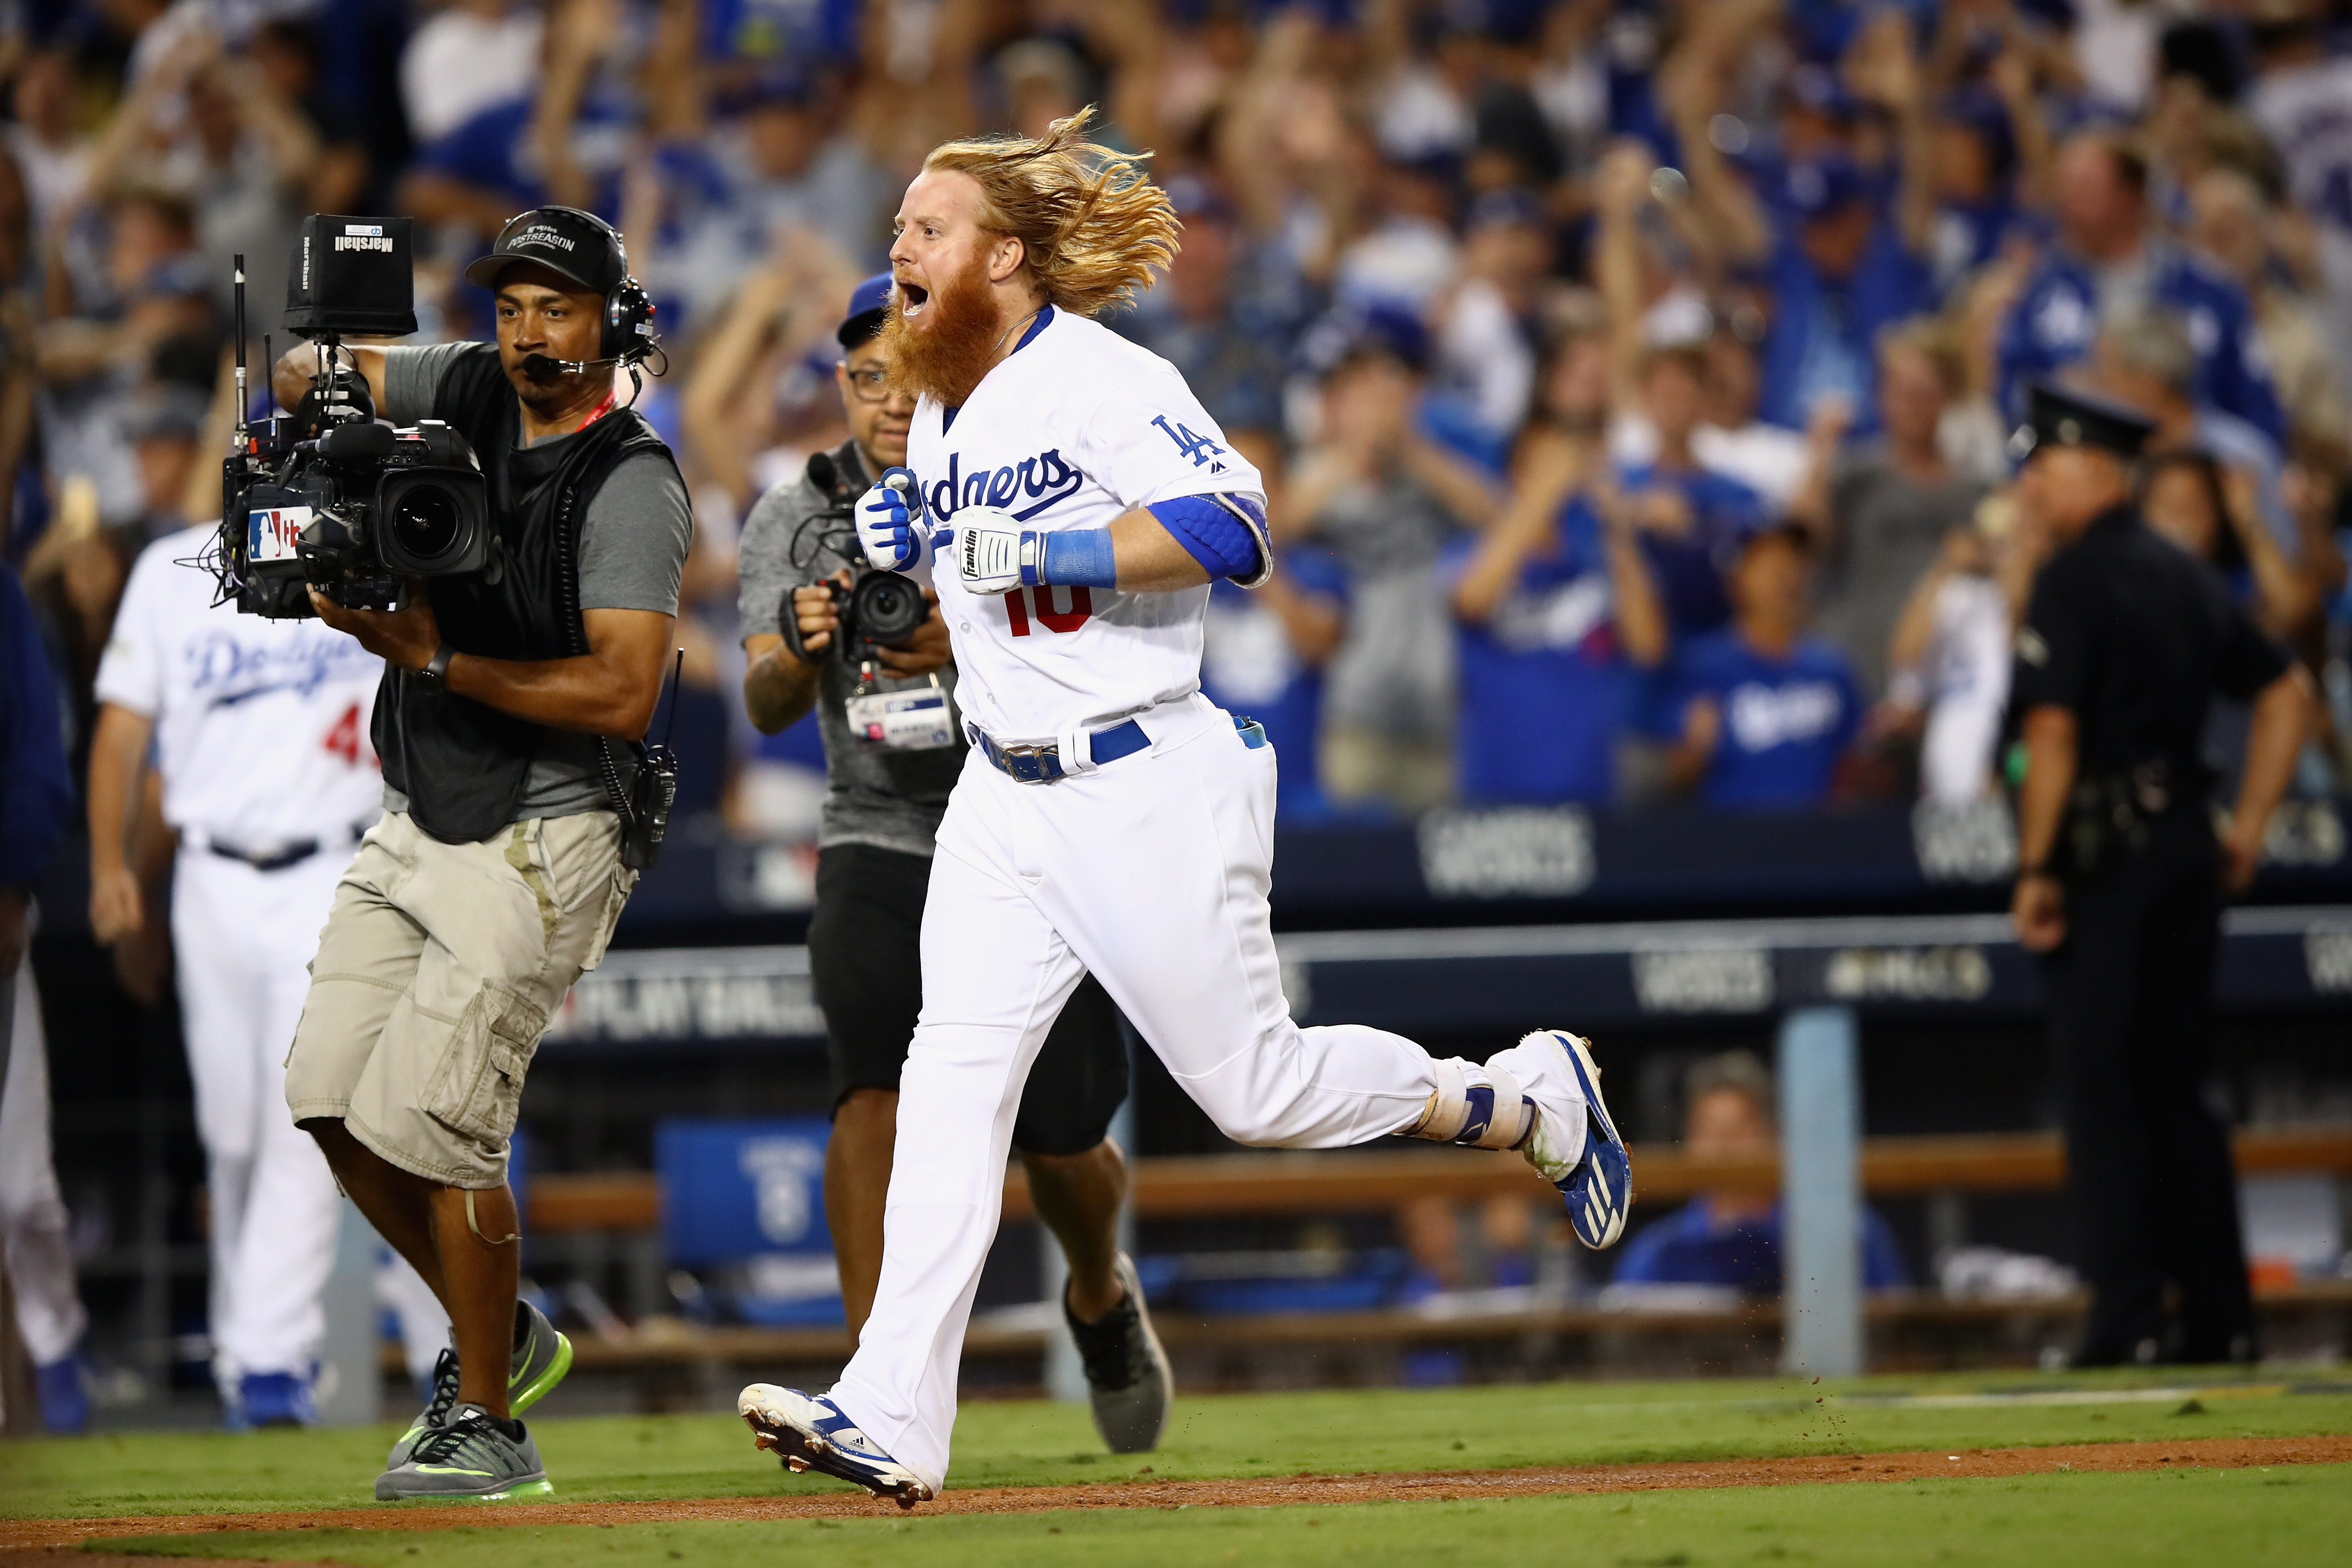 Justin Turner jobs home after hitting the winning home run in the bottom of the ninth during game two of the National League Championship Series against the Chicago Cubs at Dodger Stadium on October 15, 2017. (Credit: Ezra Shaw/Getty Images)